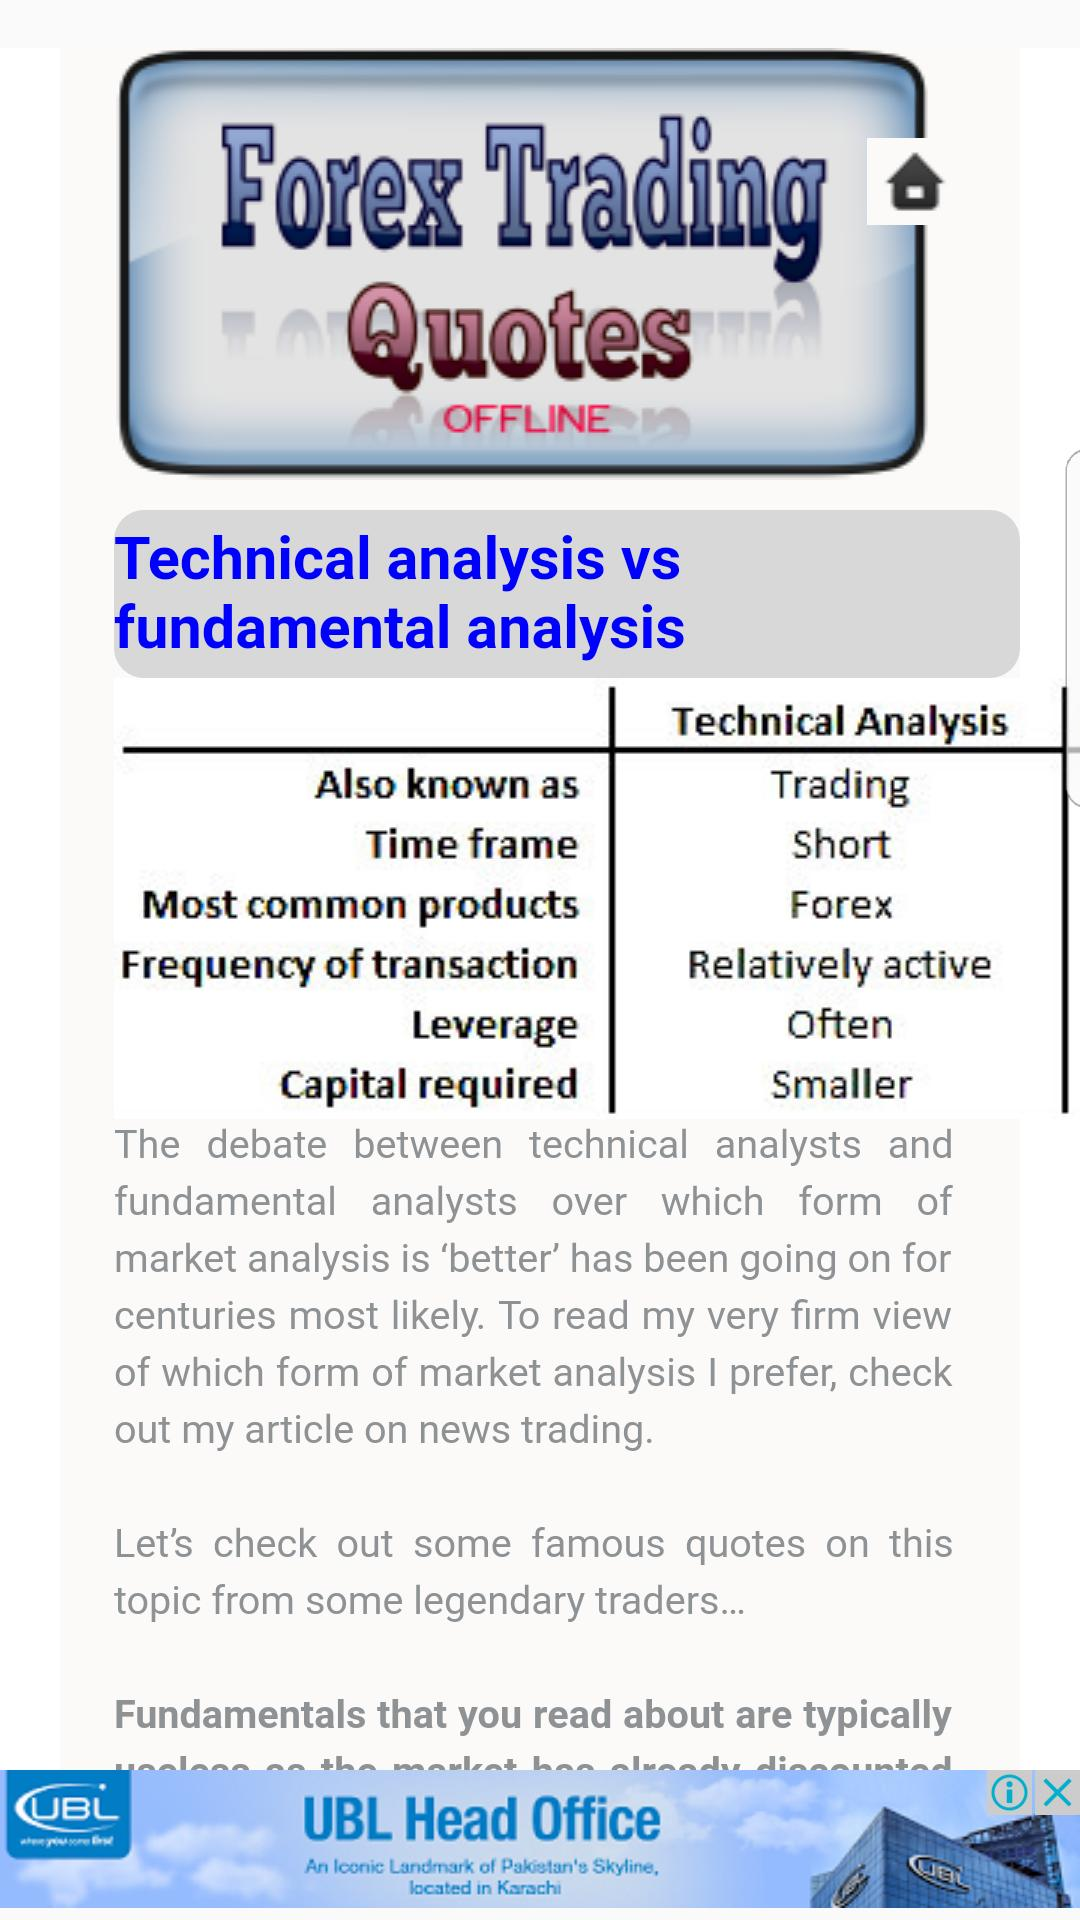 Tutorials for Forex Trading Quotes for Android - APK Download